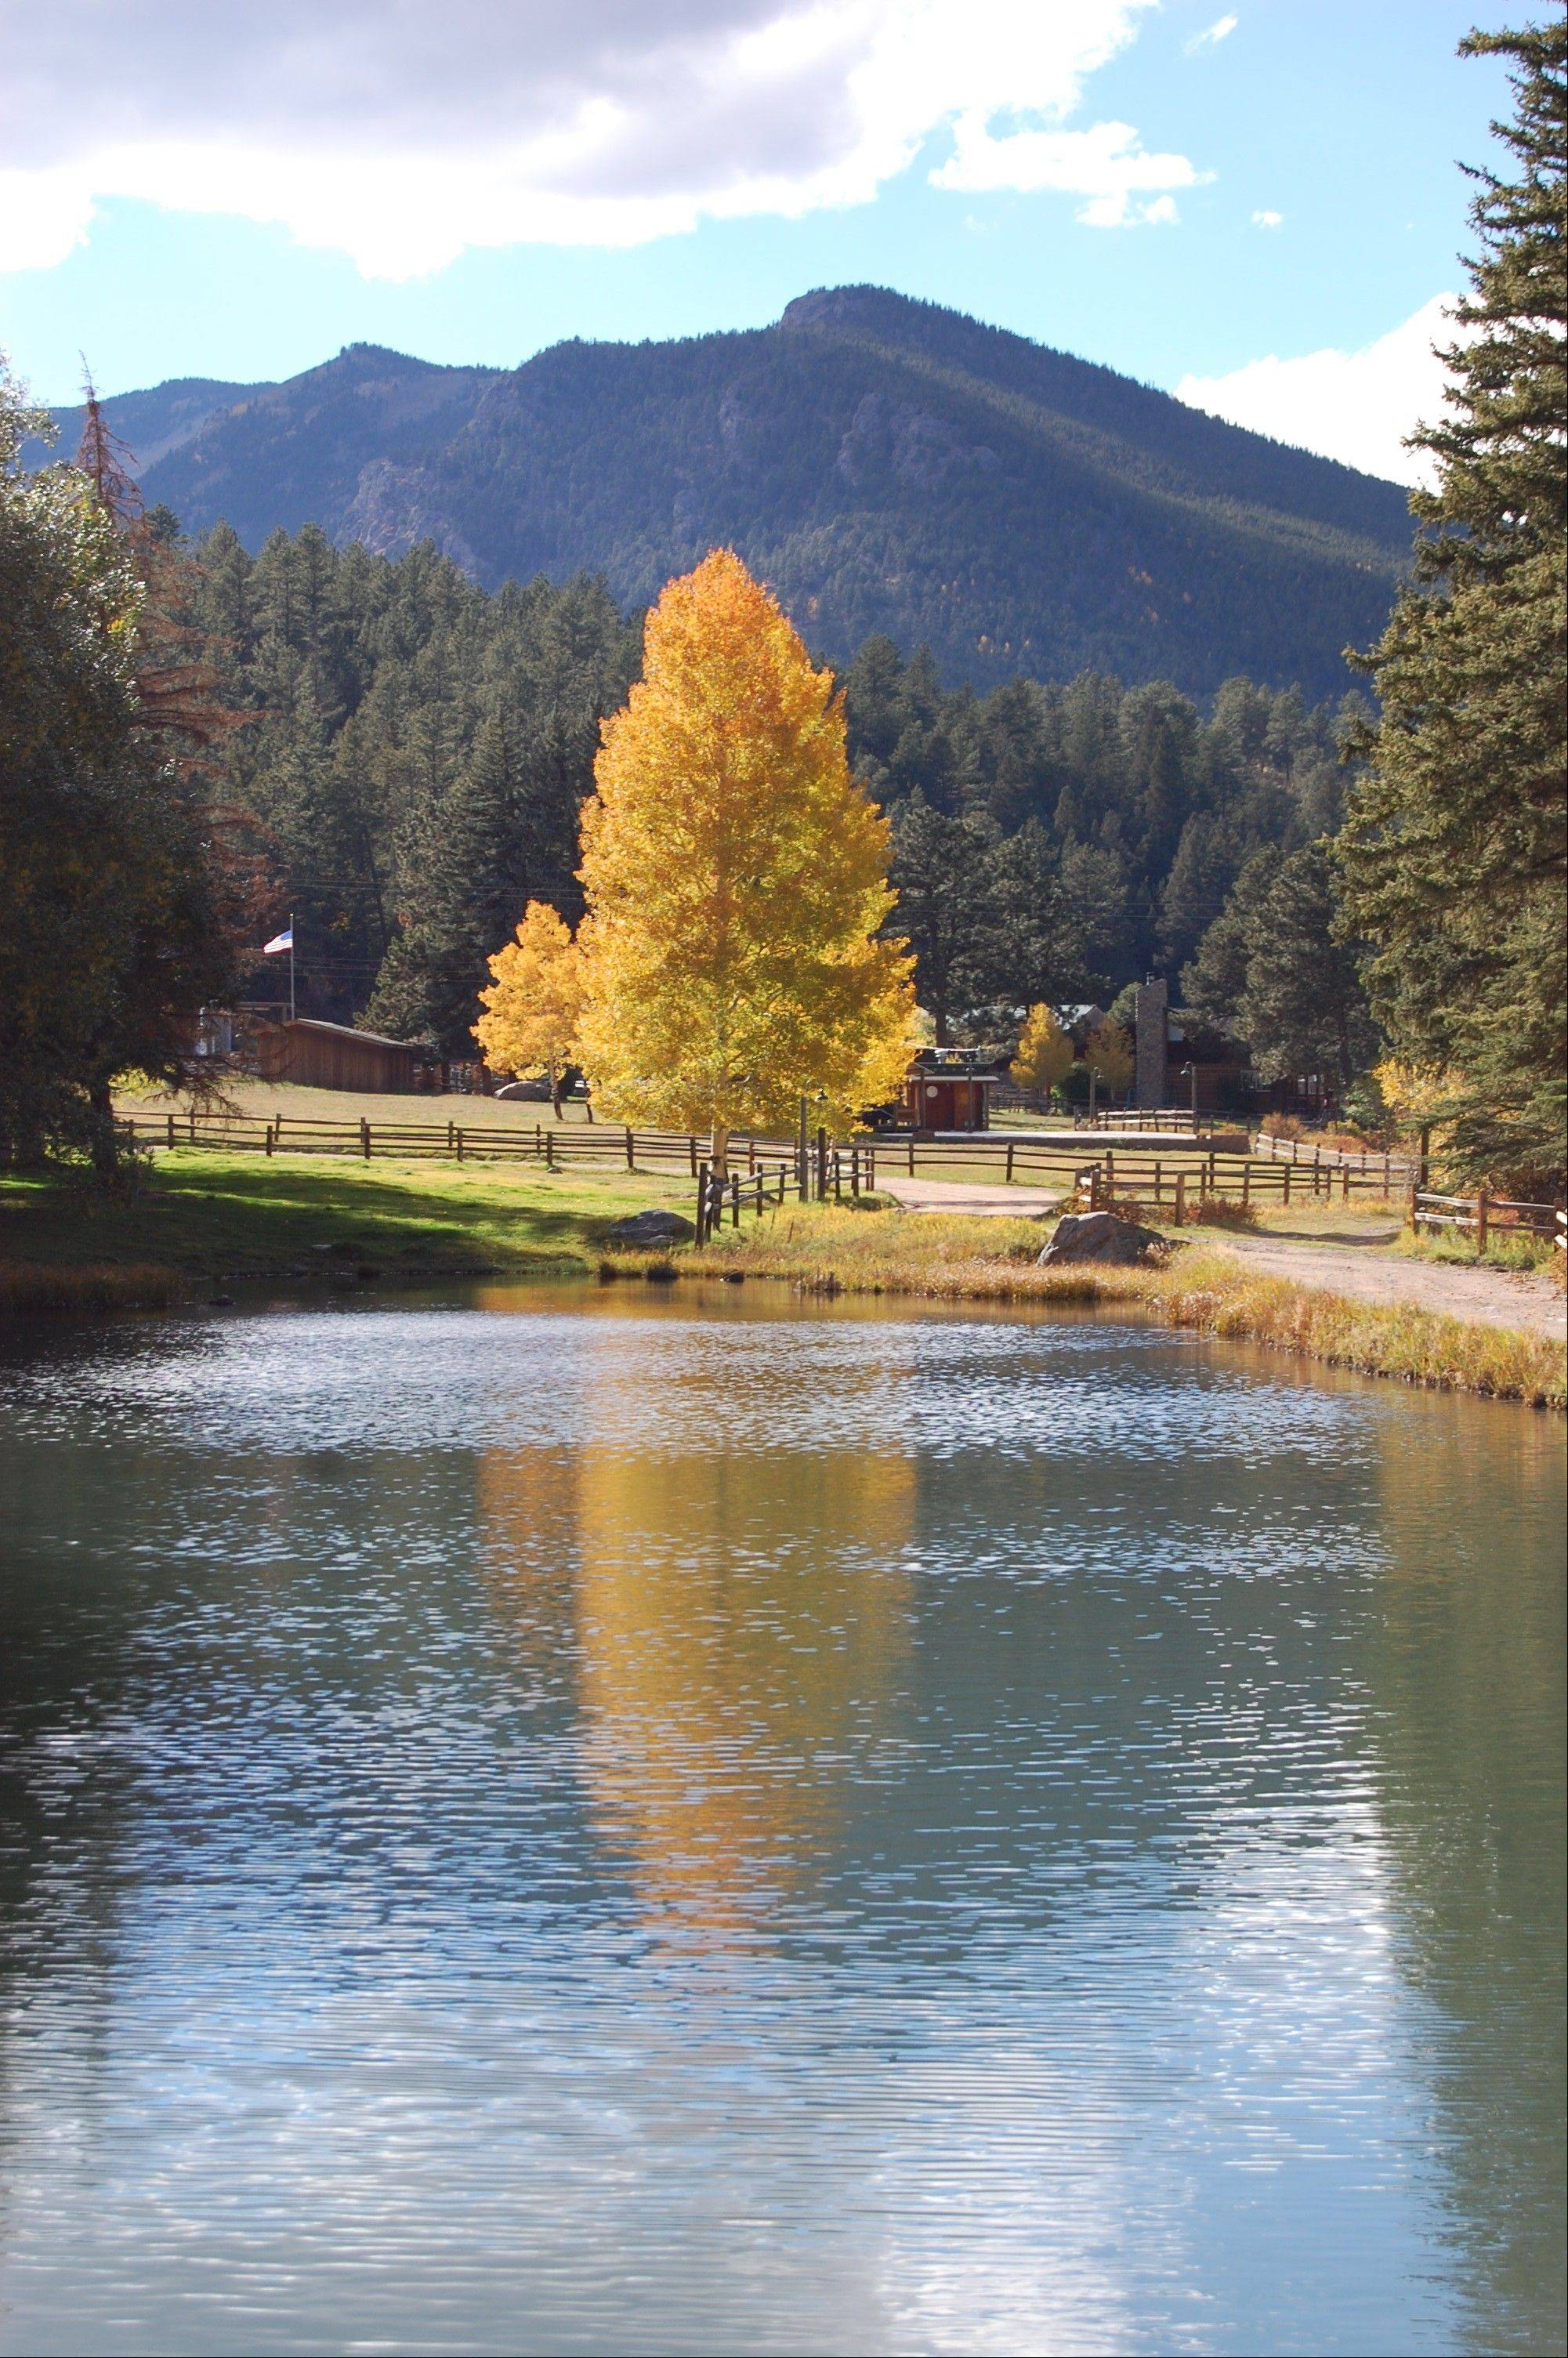 North Fork Ranch and Fishing Lodge in Shawnee, Colo., offers great views along with outdoor activities such as zip-lining, fly-fishing and mountain biking.